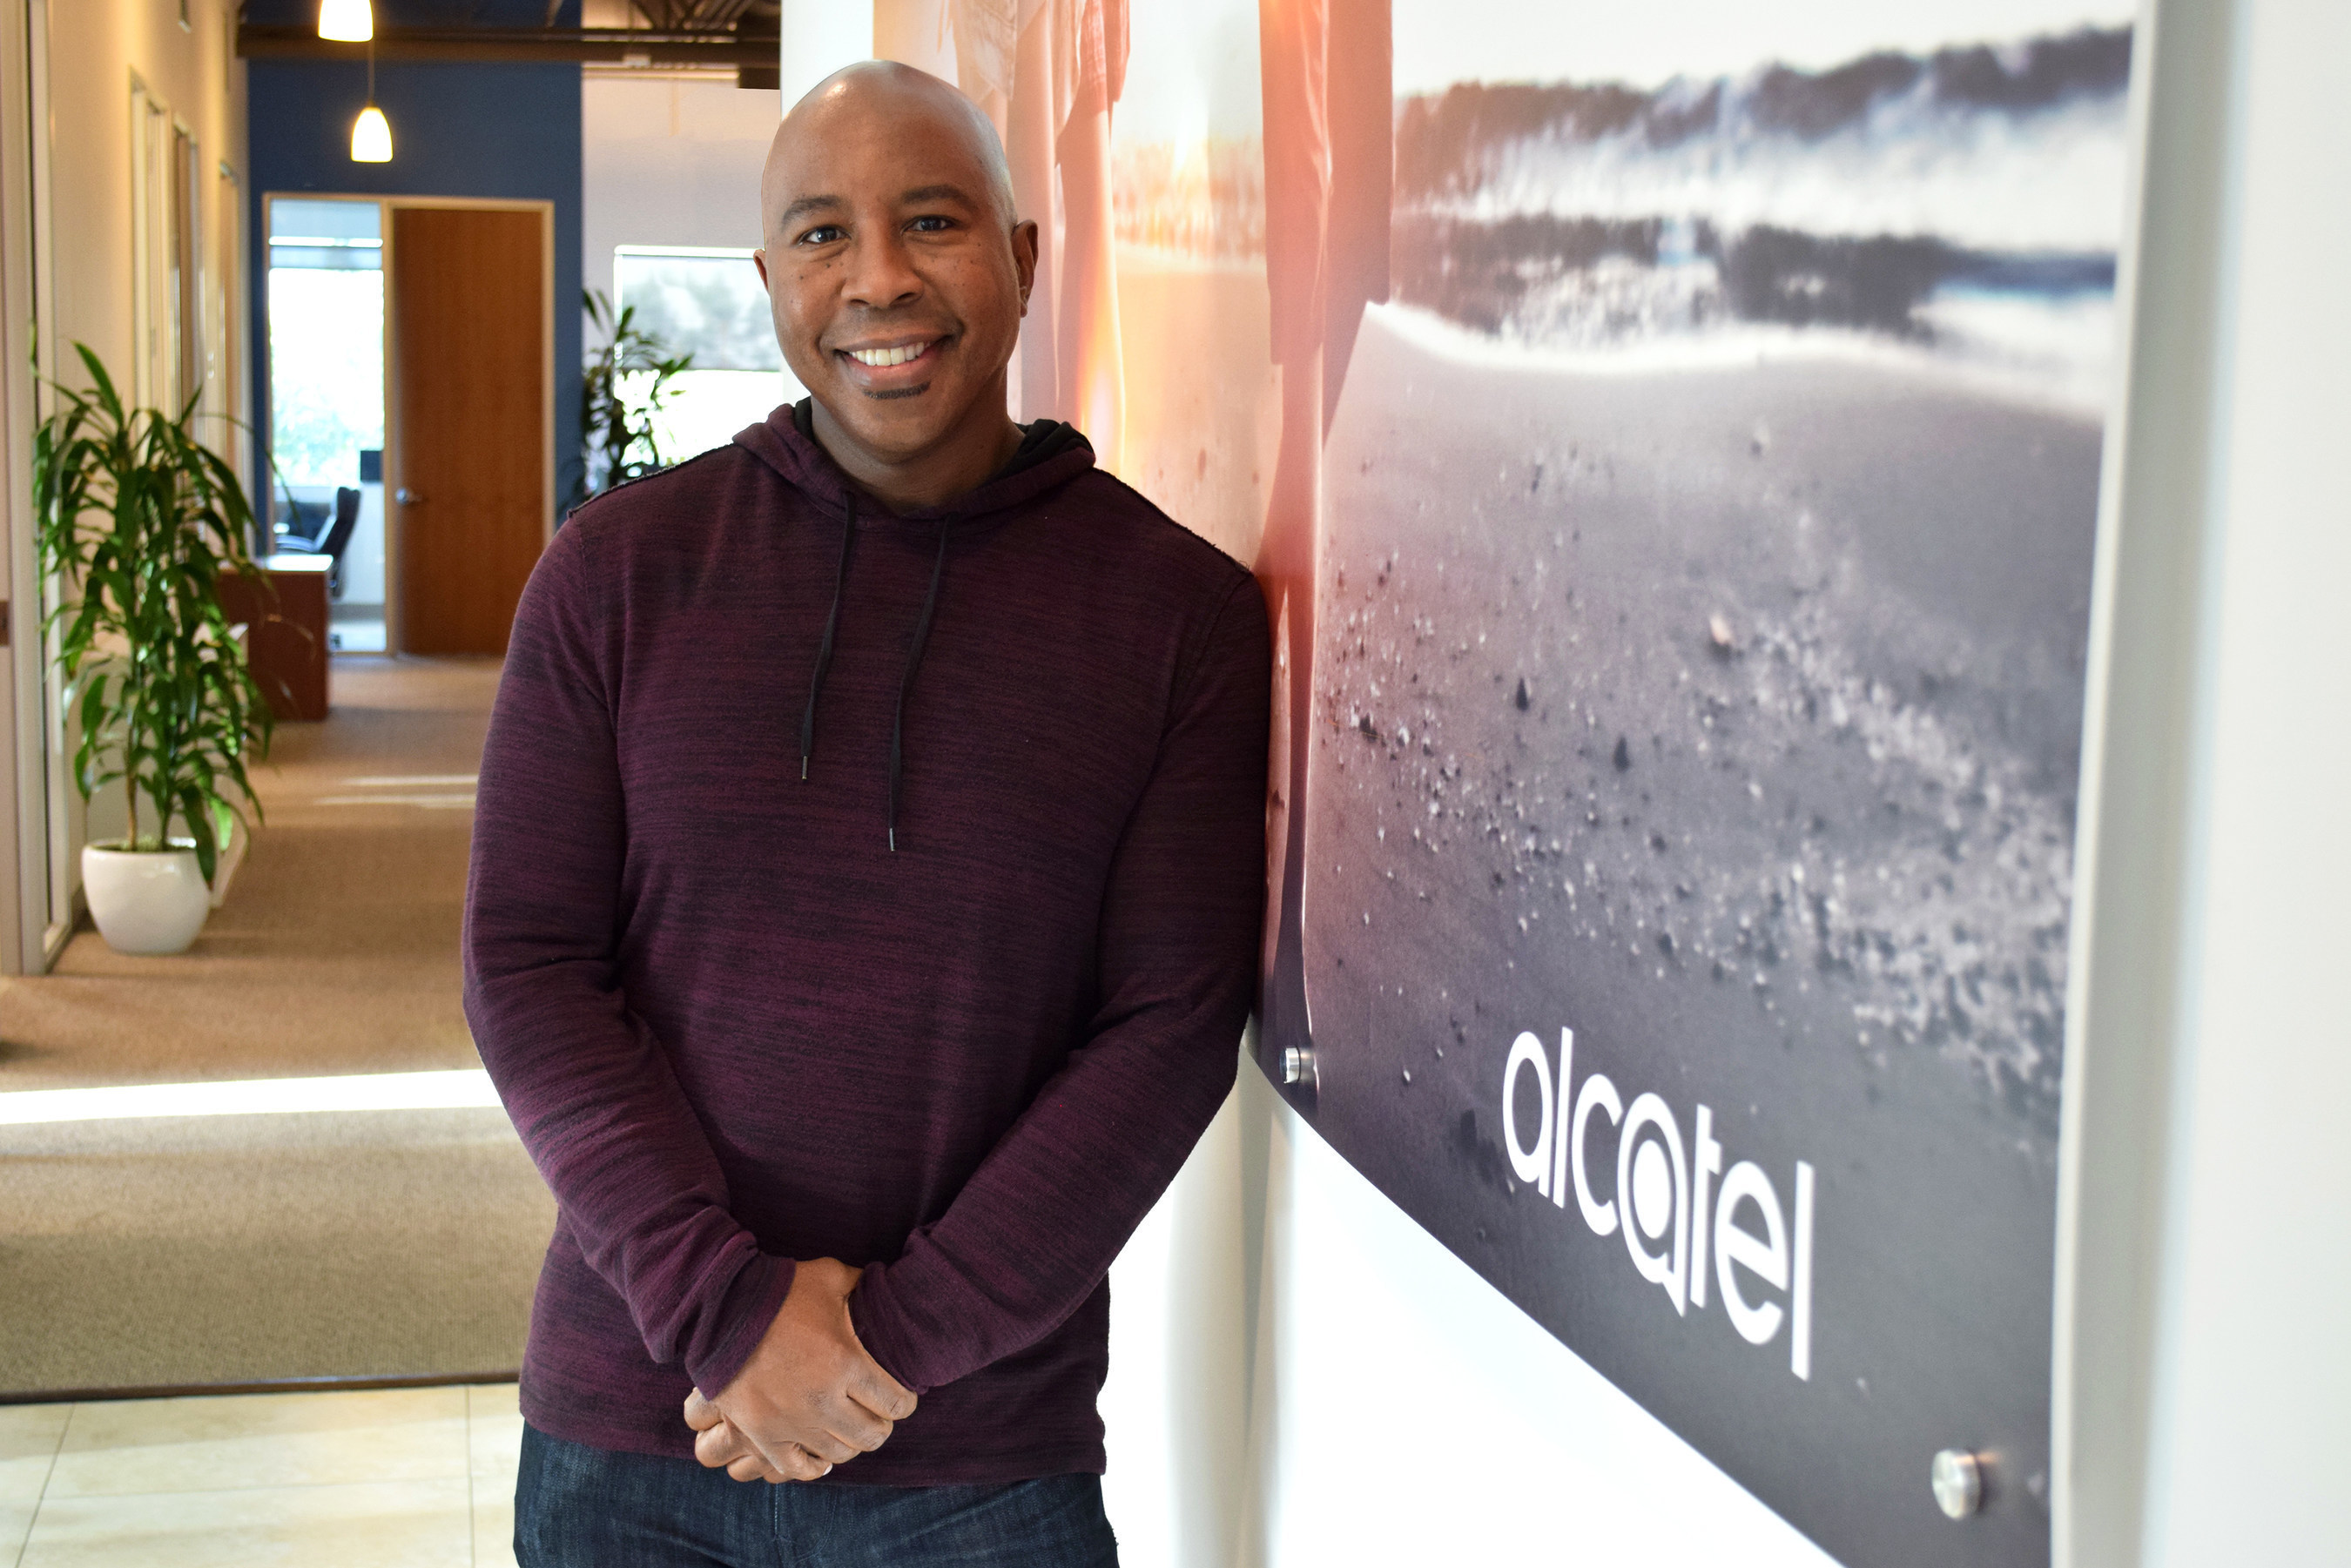 Alcatel announces Wayne White as Vice President of Sales for North America